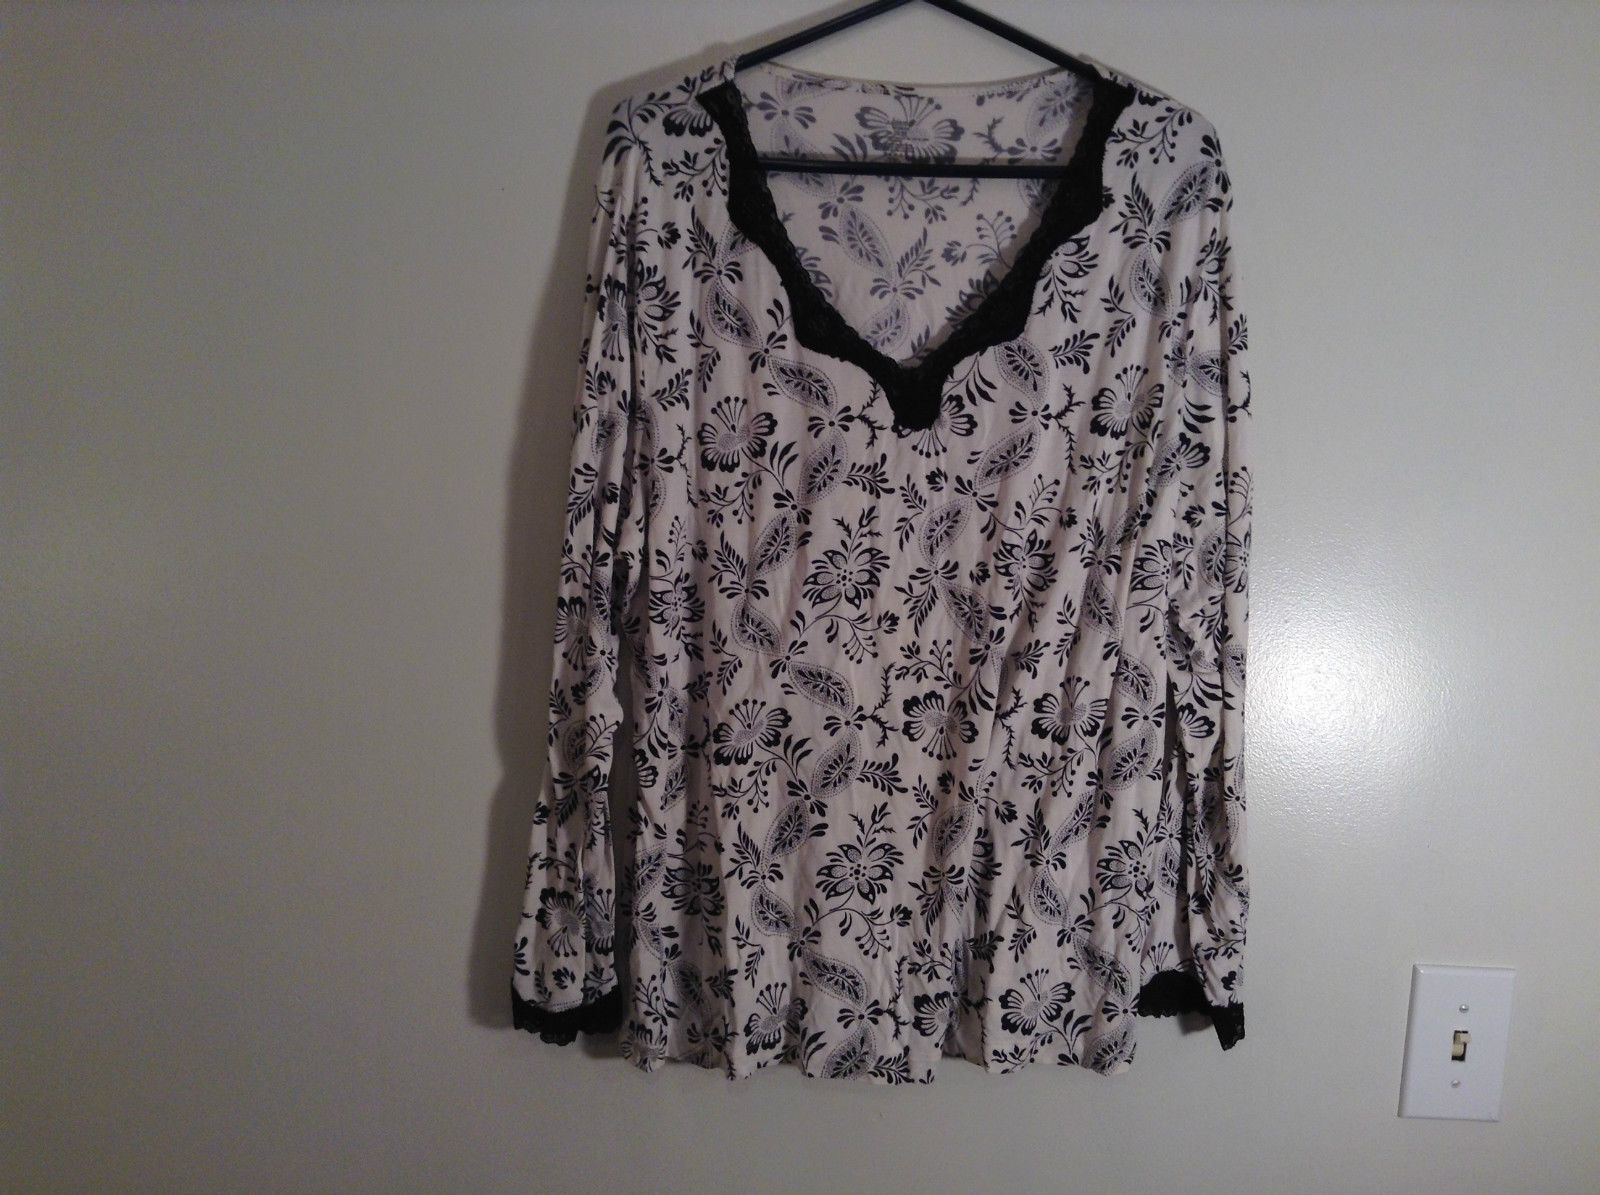 Black White Floral Print Long Sleeve Shirt Lace Trim Size 20 to 22/2X Adonna